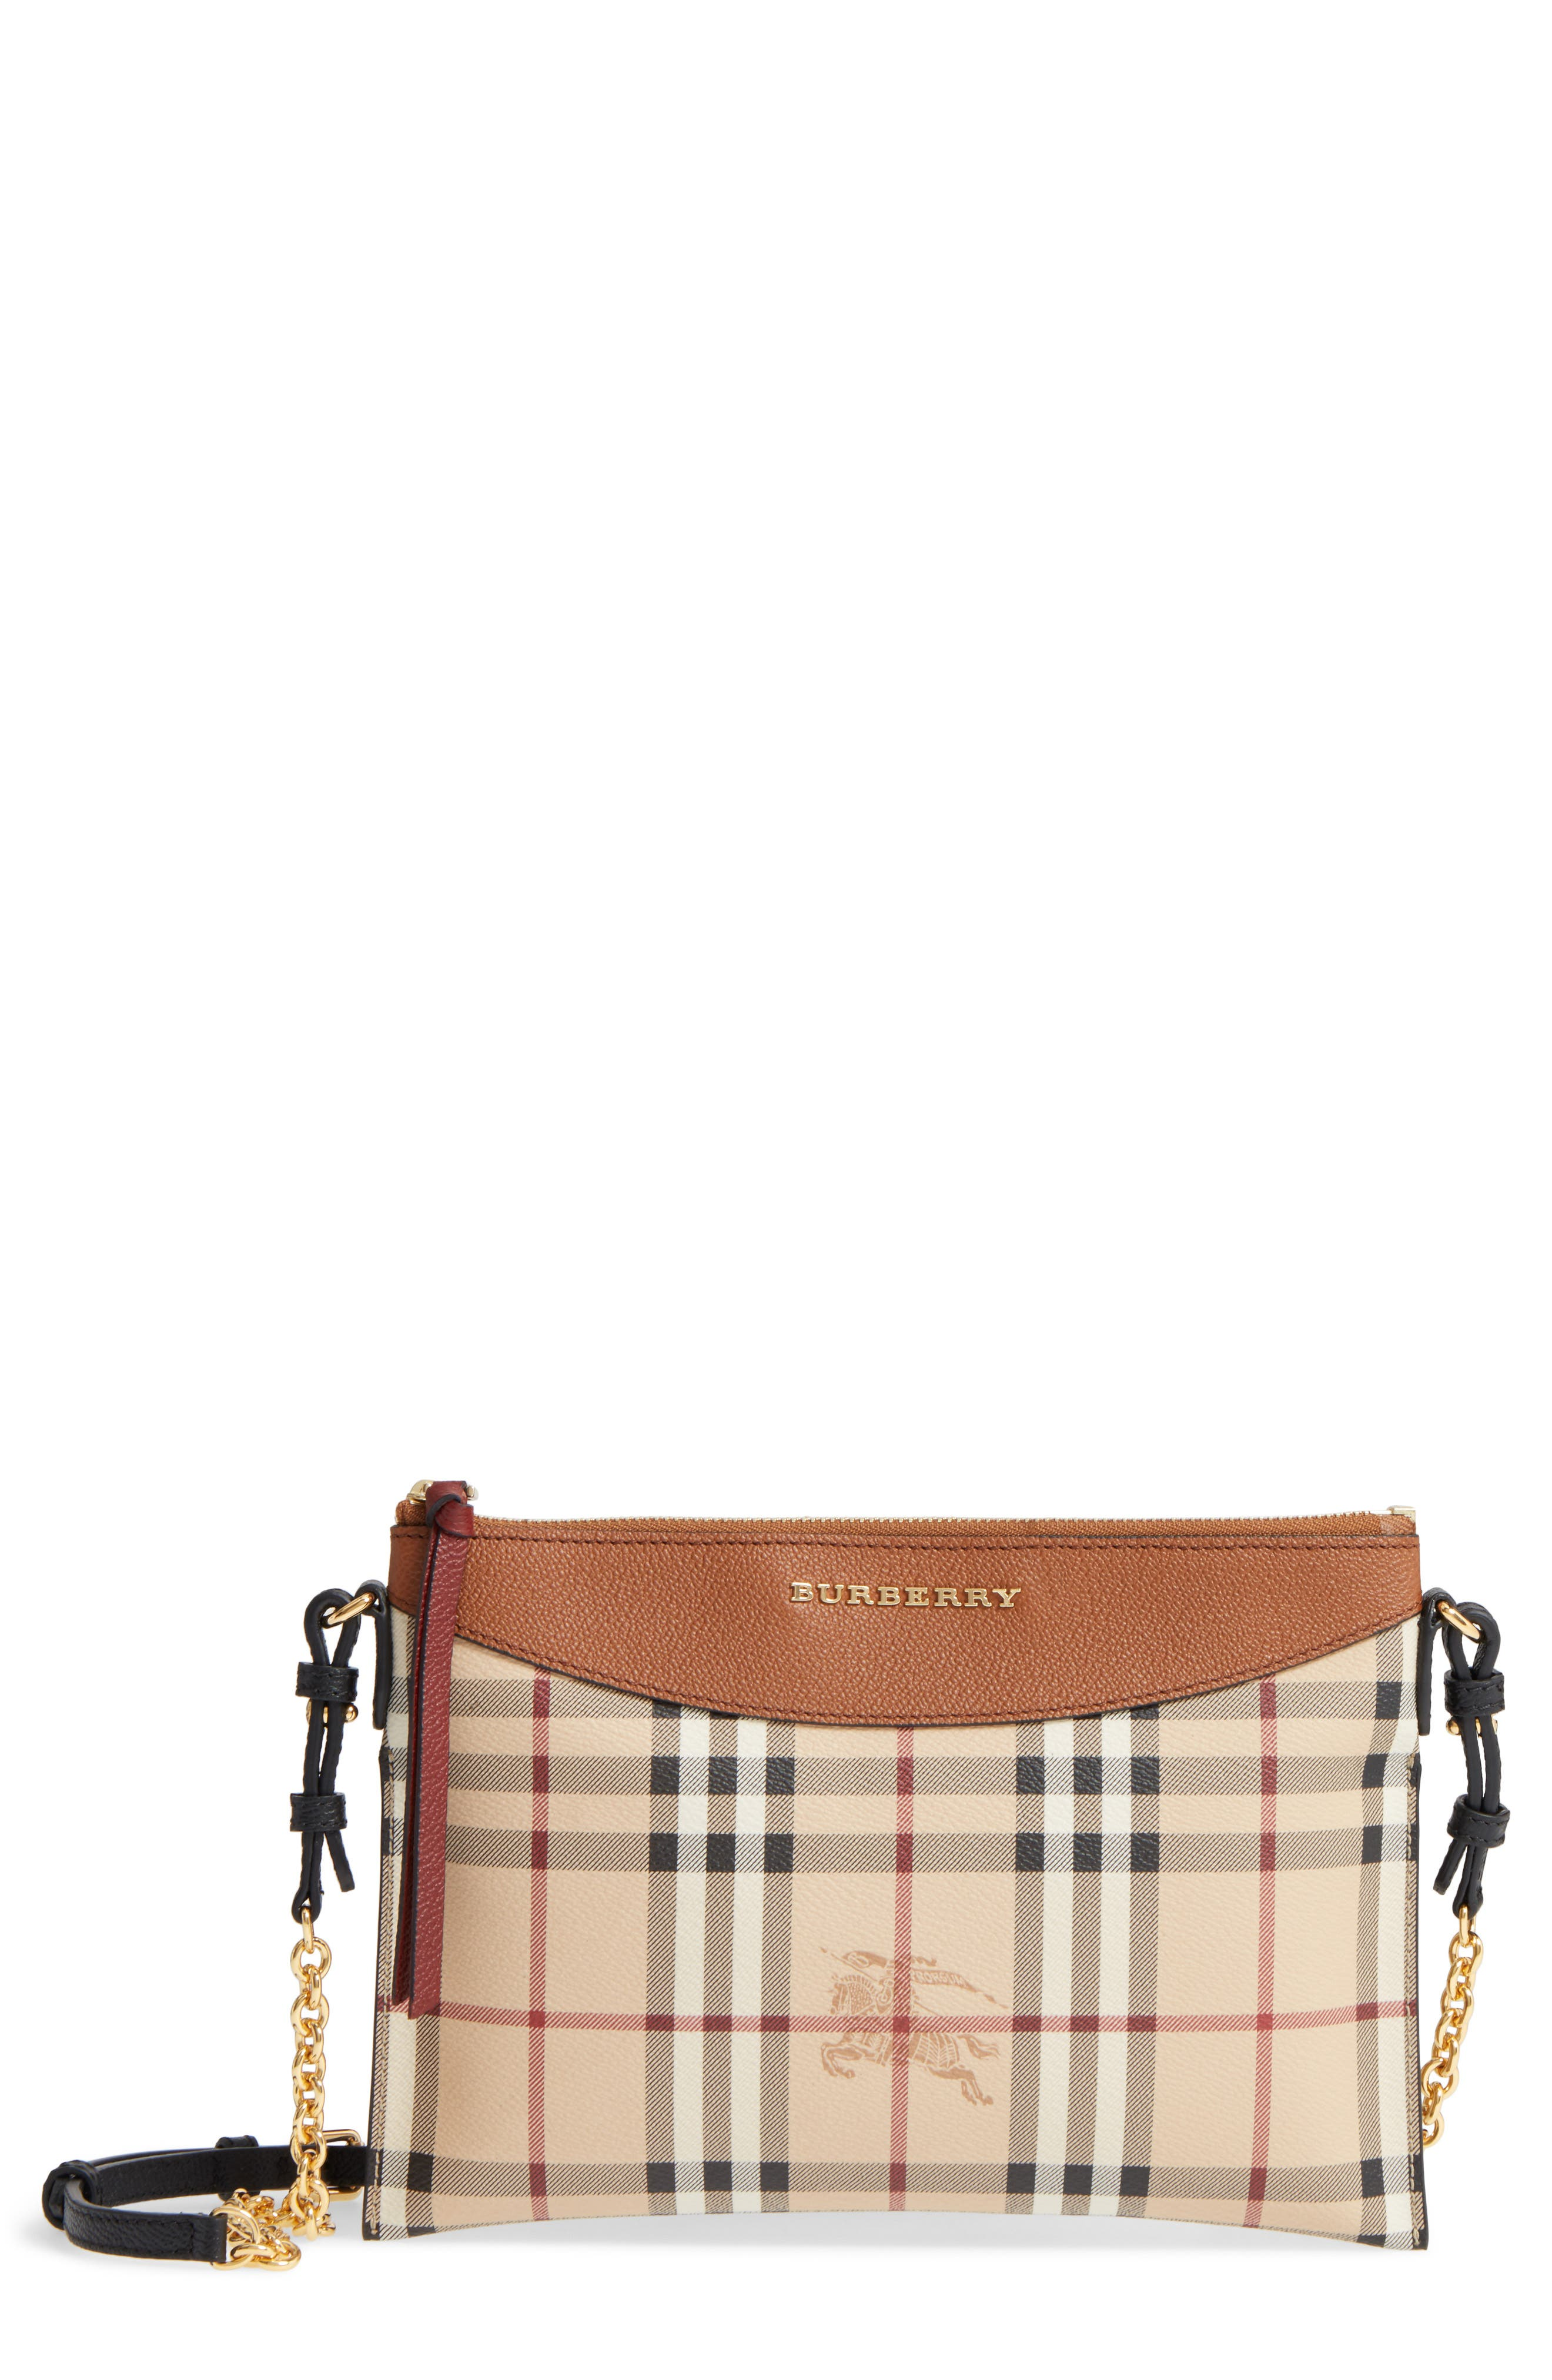 Burberry Peyton - Haymarket Check Coated Canvas Crossbody Bag